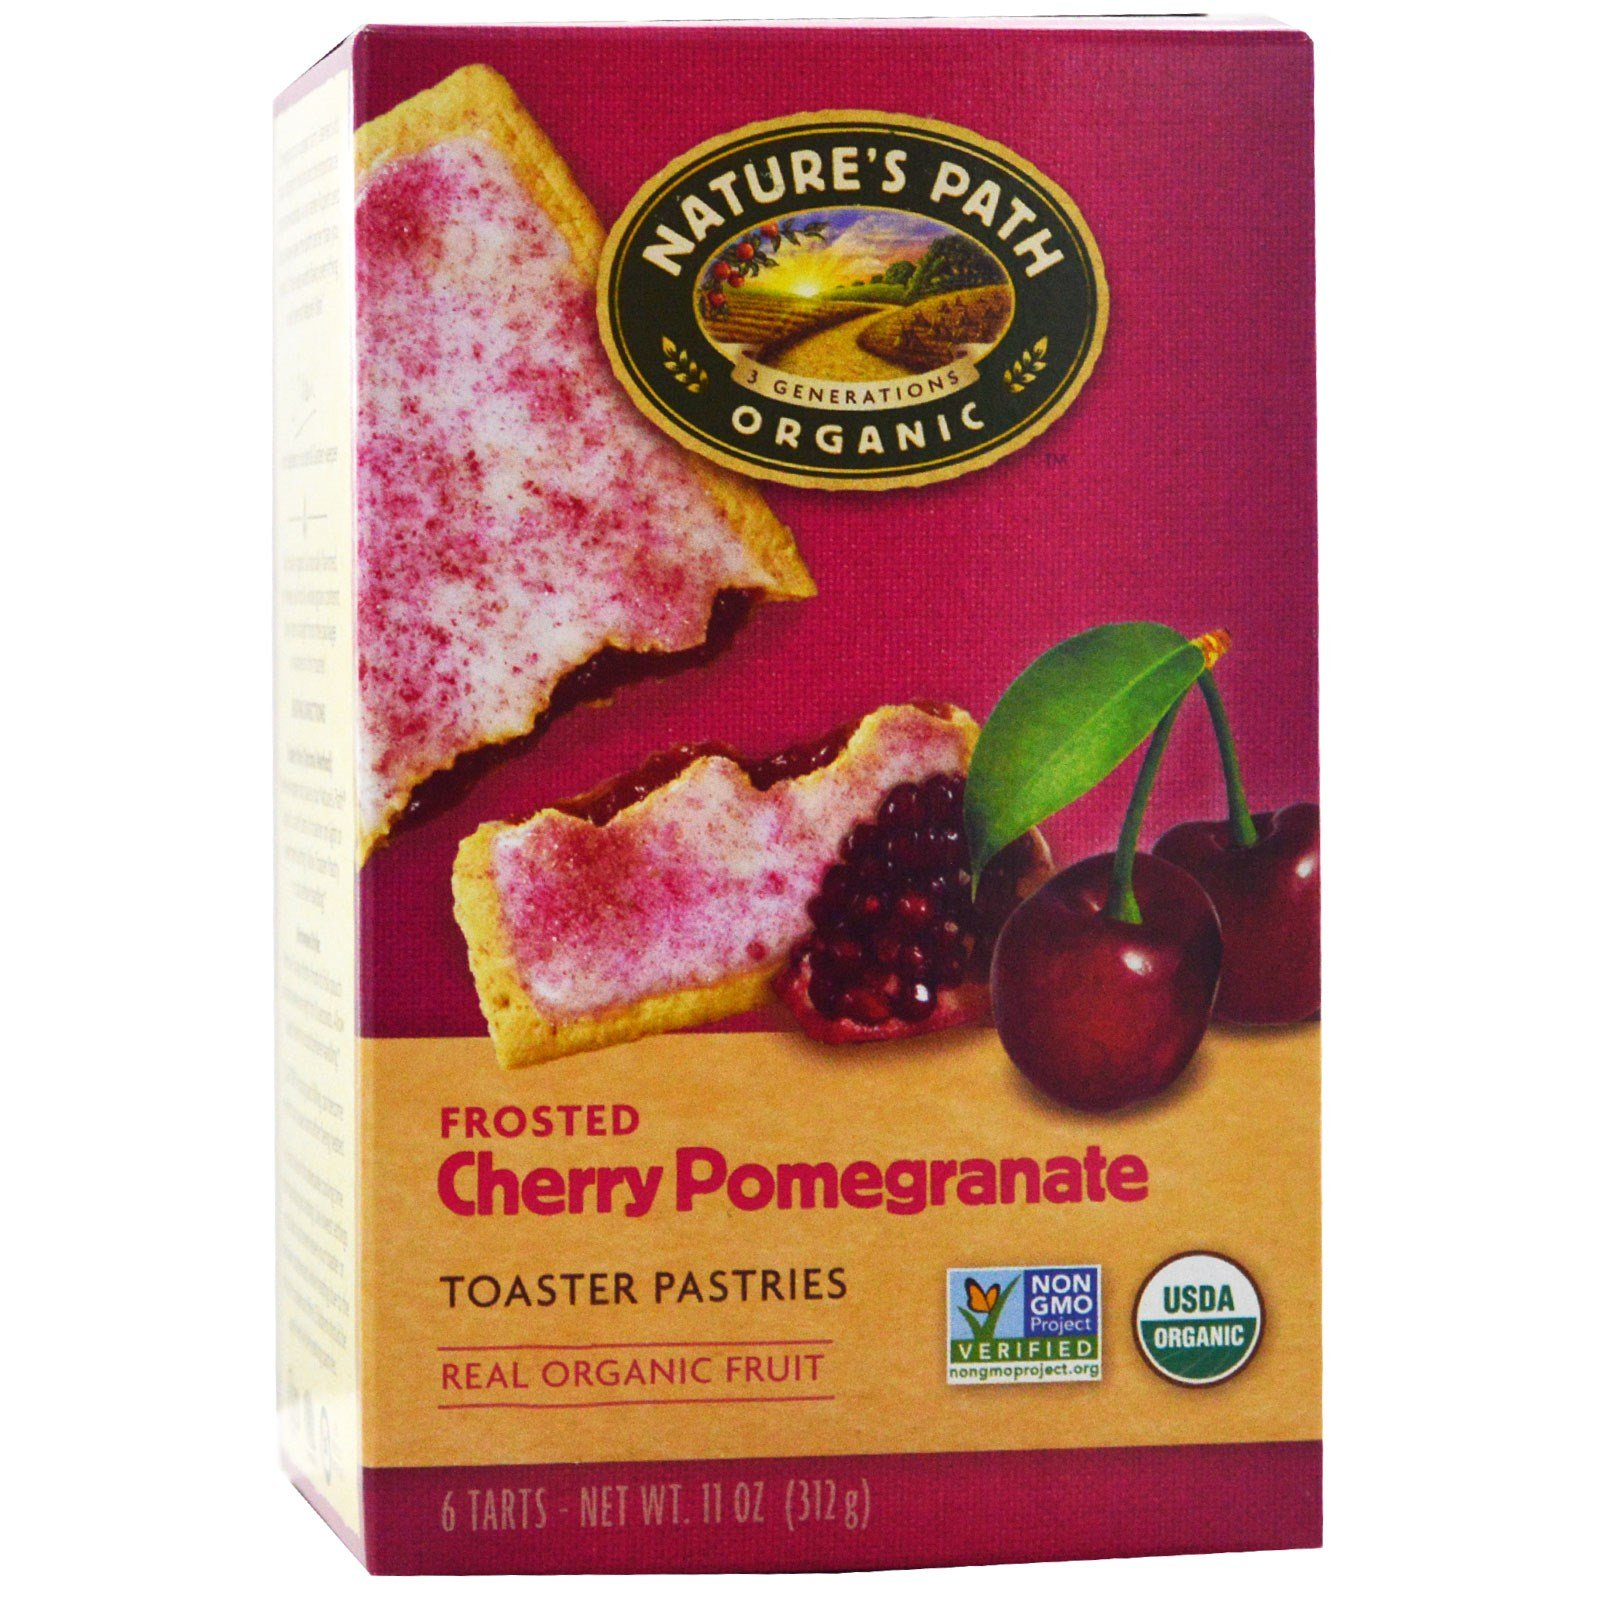 Nature's Path, Organic, Frosted Toaster Pastries, Cherry Pomegranate, 6 Tarts, Each(Pack of 4)